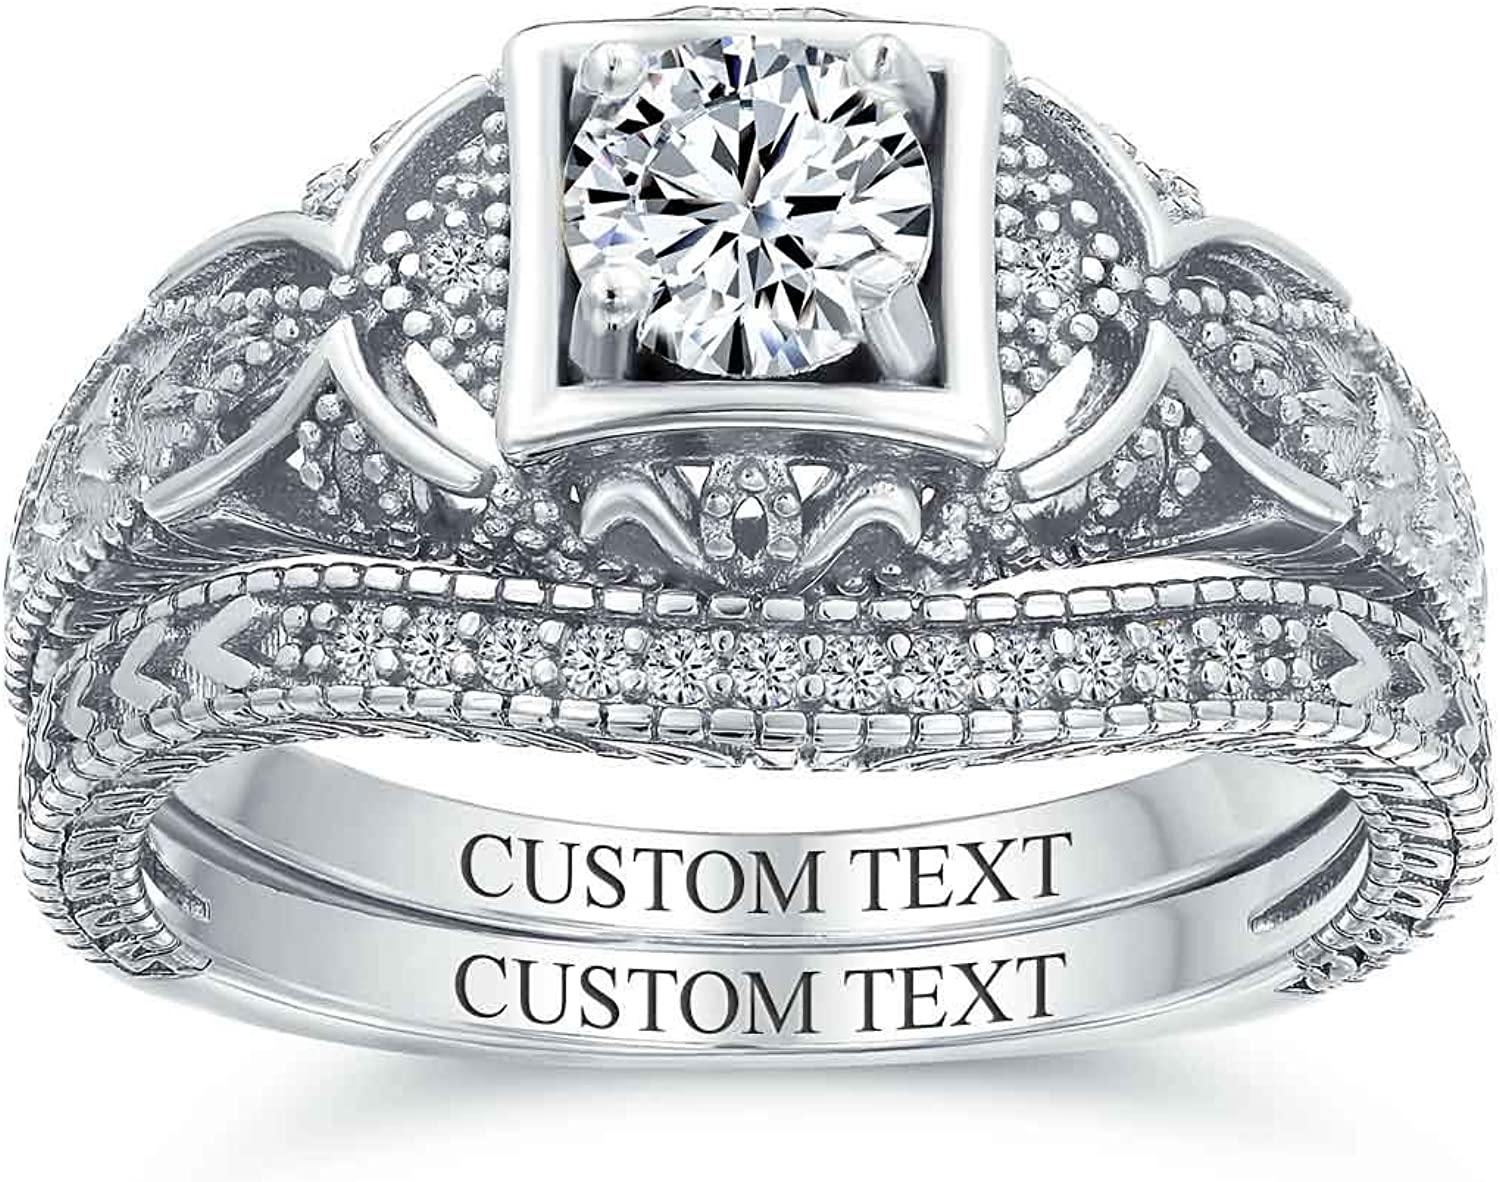 Details about  /Solitaire Style Art Deco 1.50 Carat Simulated Diamond 925 Silver Victorian Ring